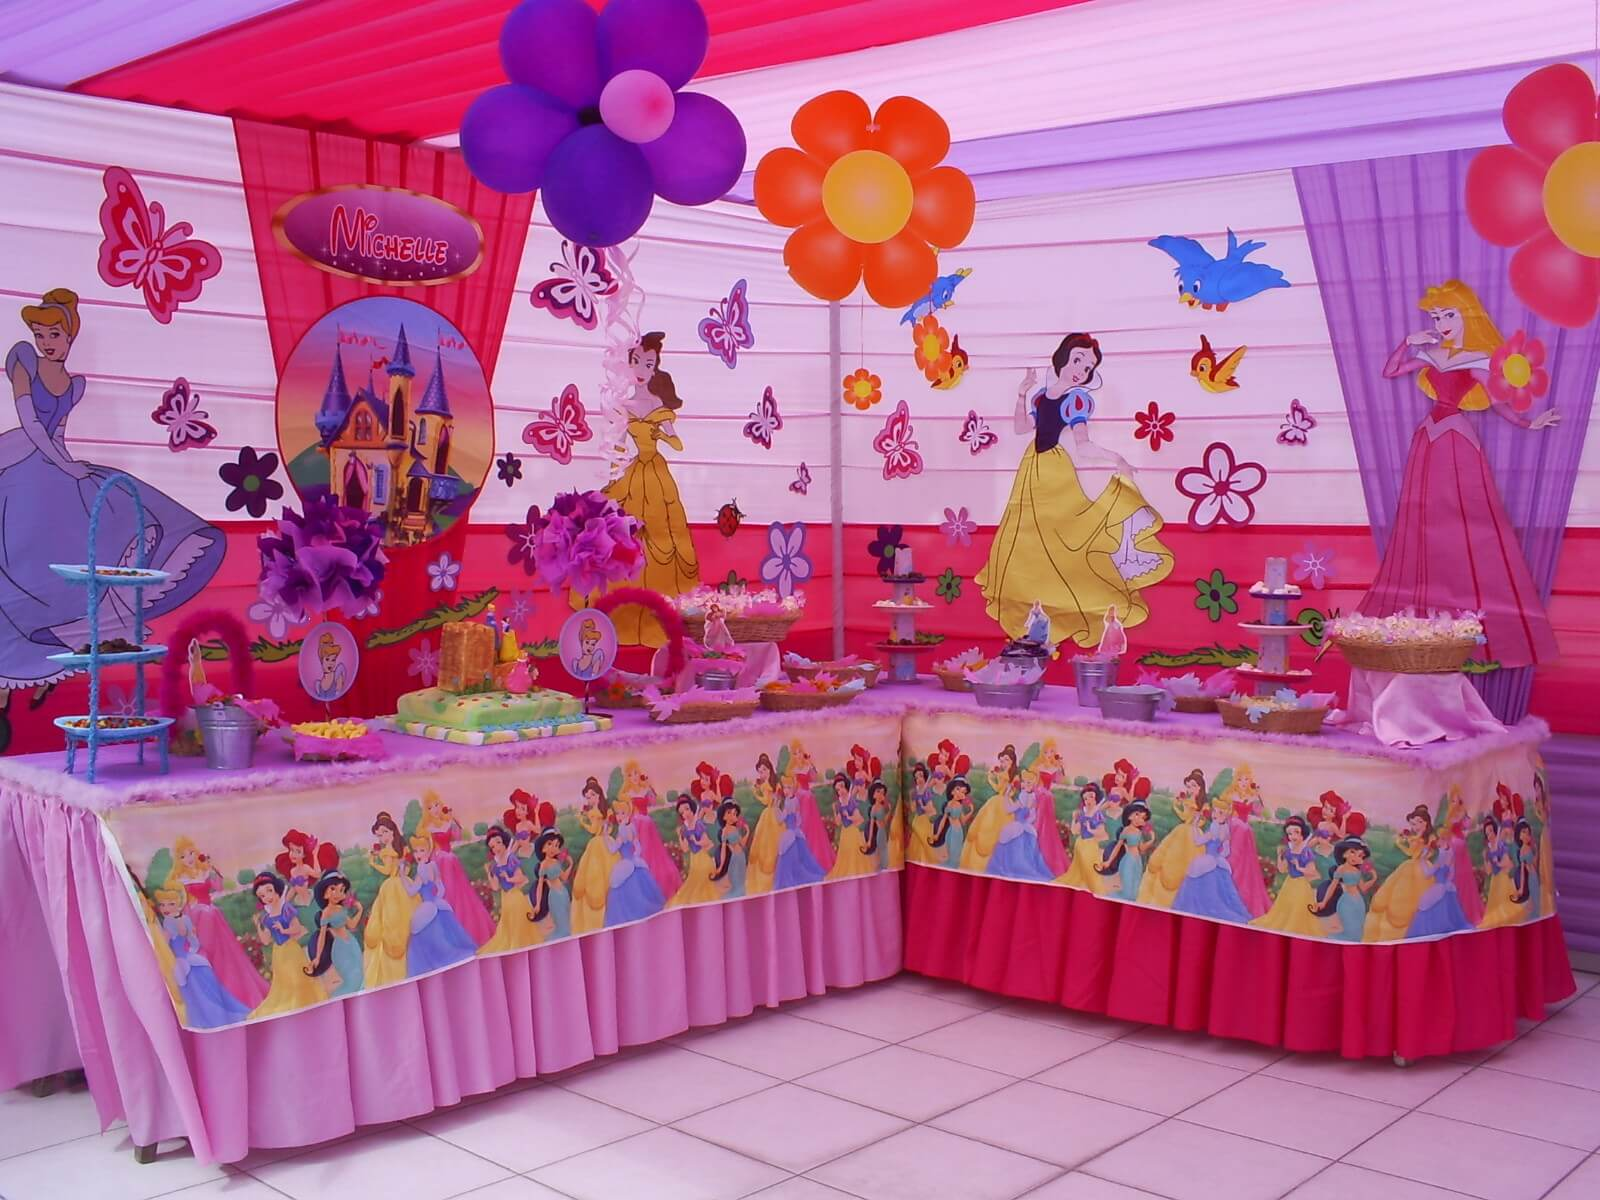 5 pasos para decorar una fiesta infantil for Buscar decoraciones